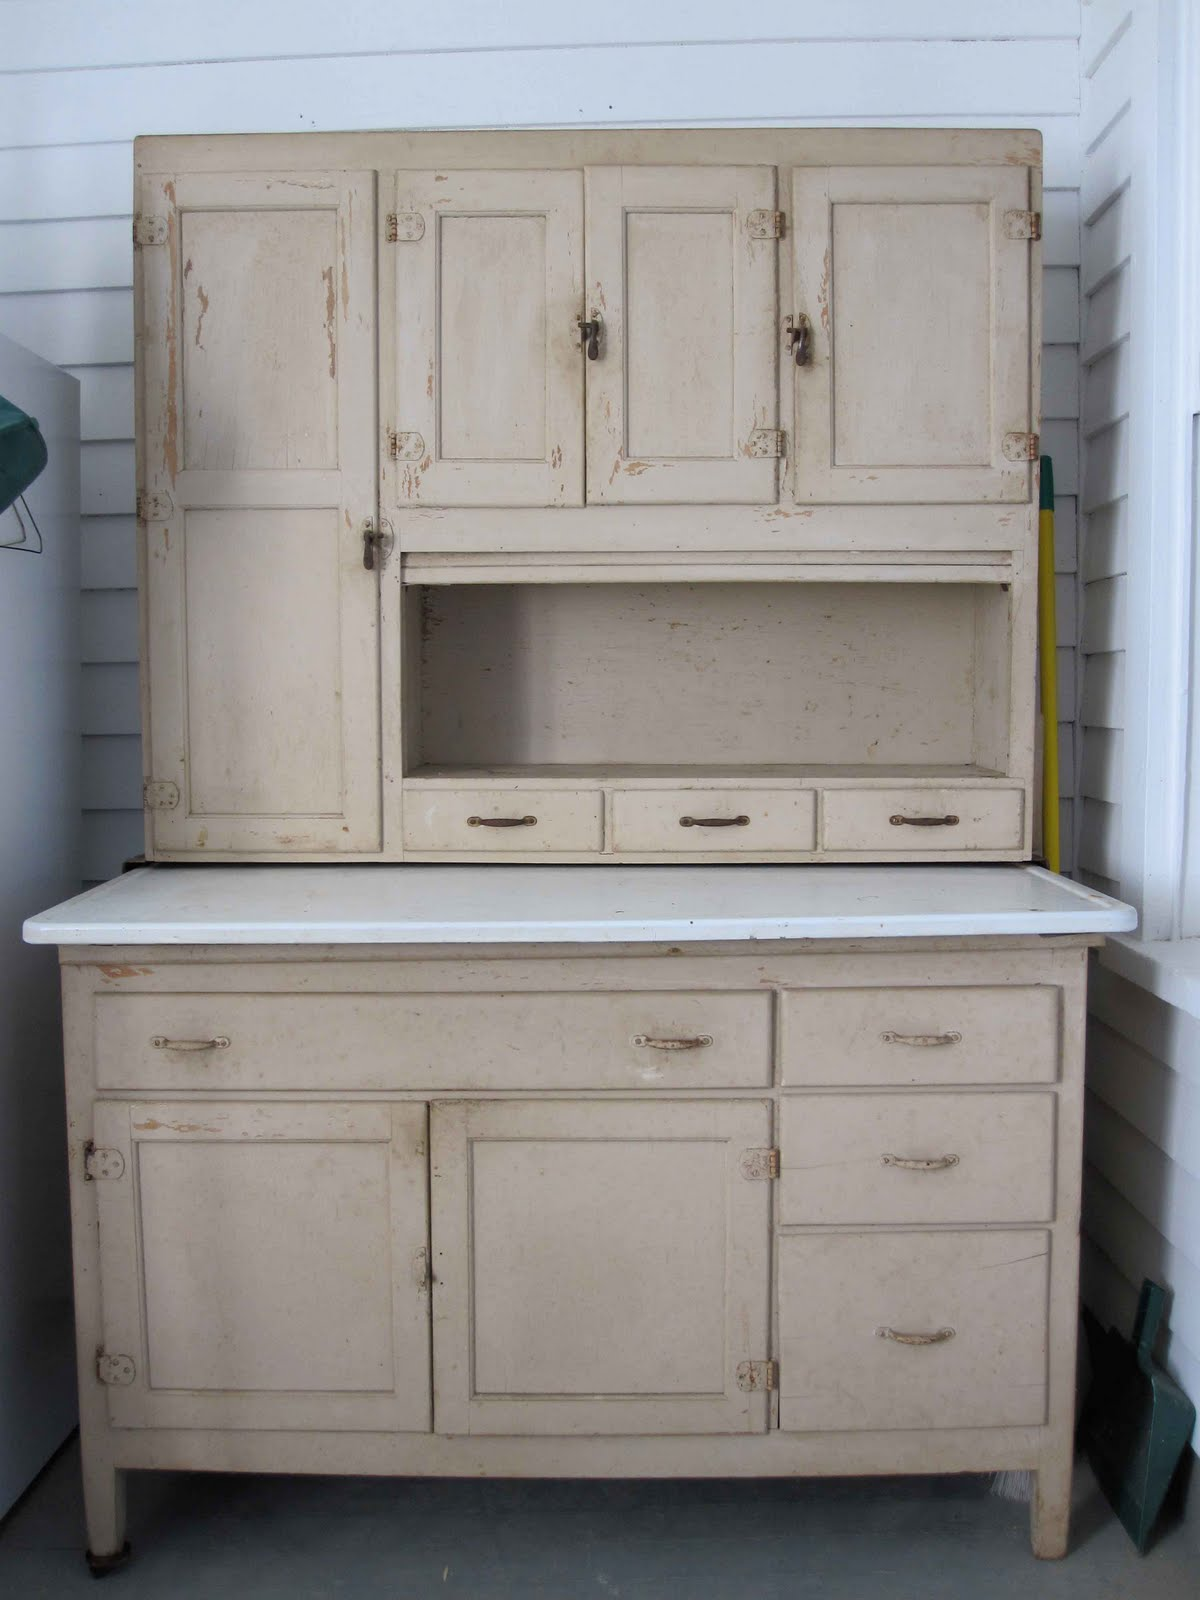 Captivating Old Mother Hubbardu0027s Cupboard